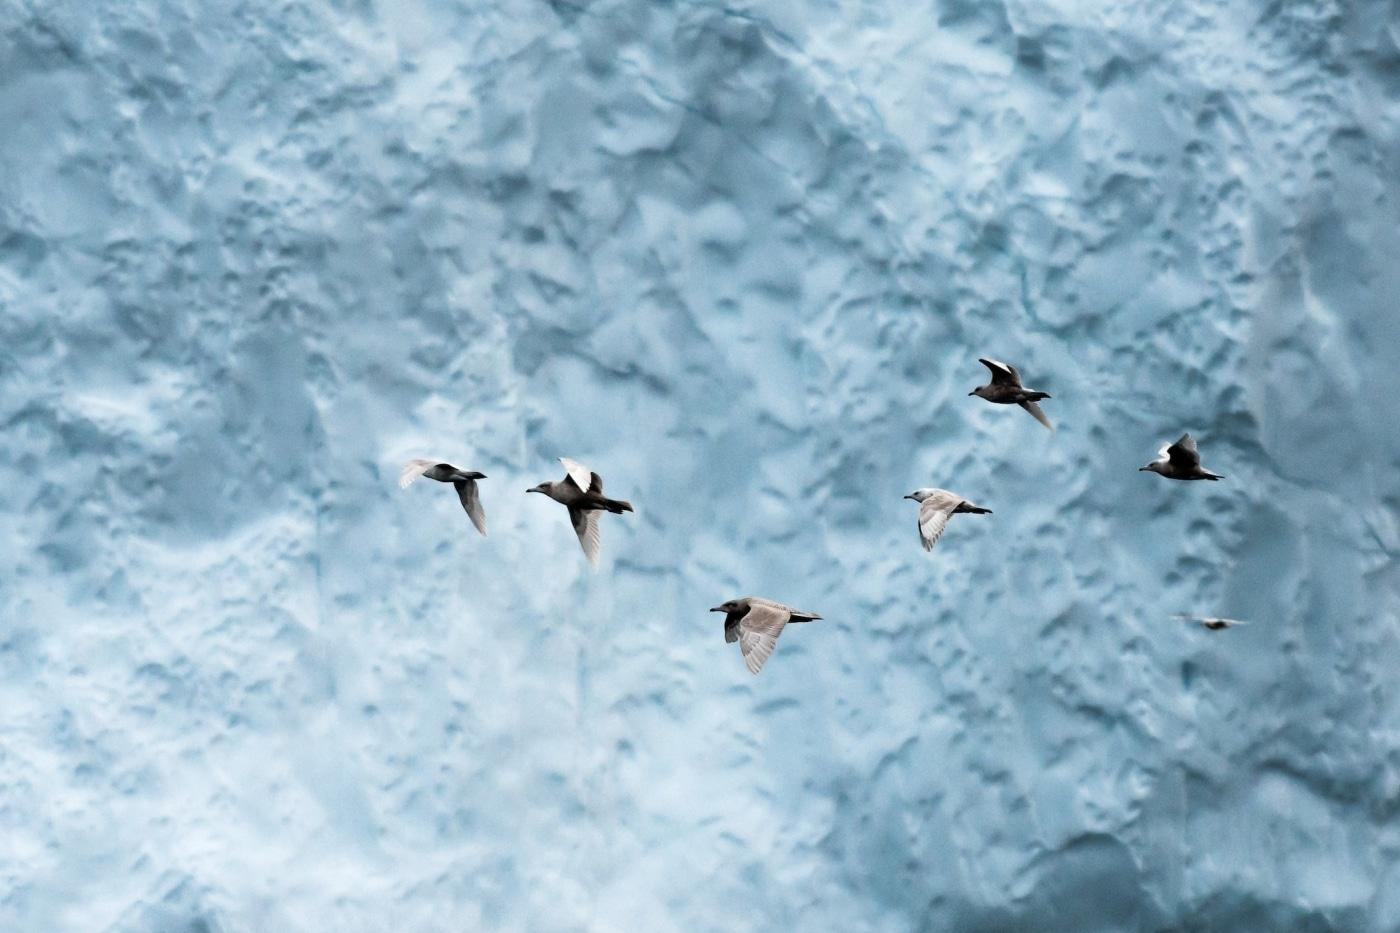 A flock of fulmar's took of as an iceberg close to them collapsed. I was amazed by the amount and variety of wildlife the Disko Bay has to offer. Photo by Stian Klo - Visit Greenland